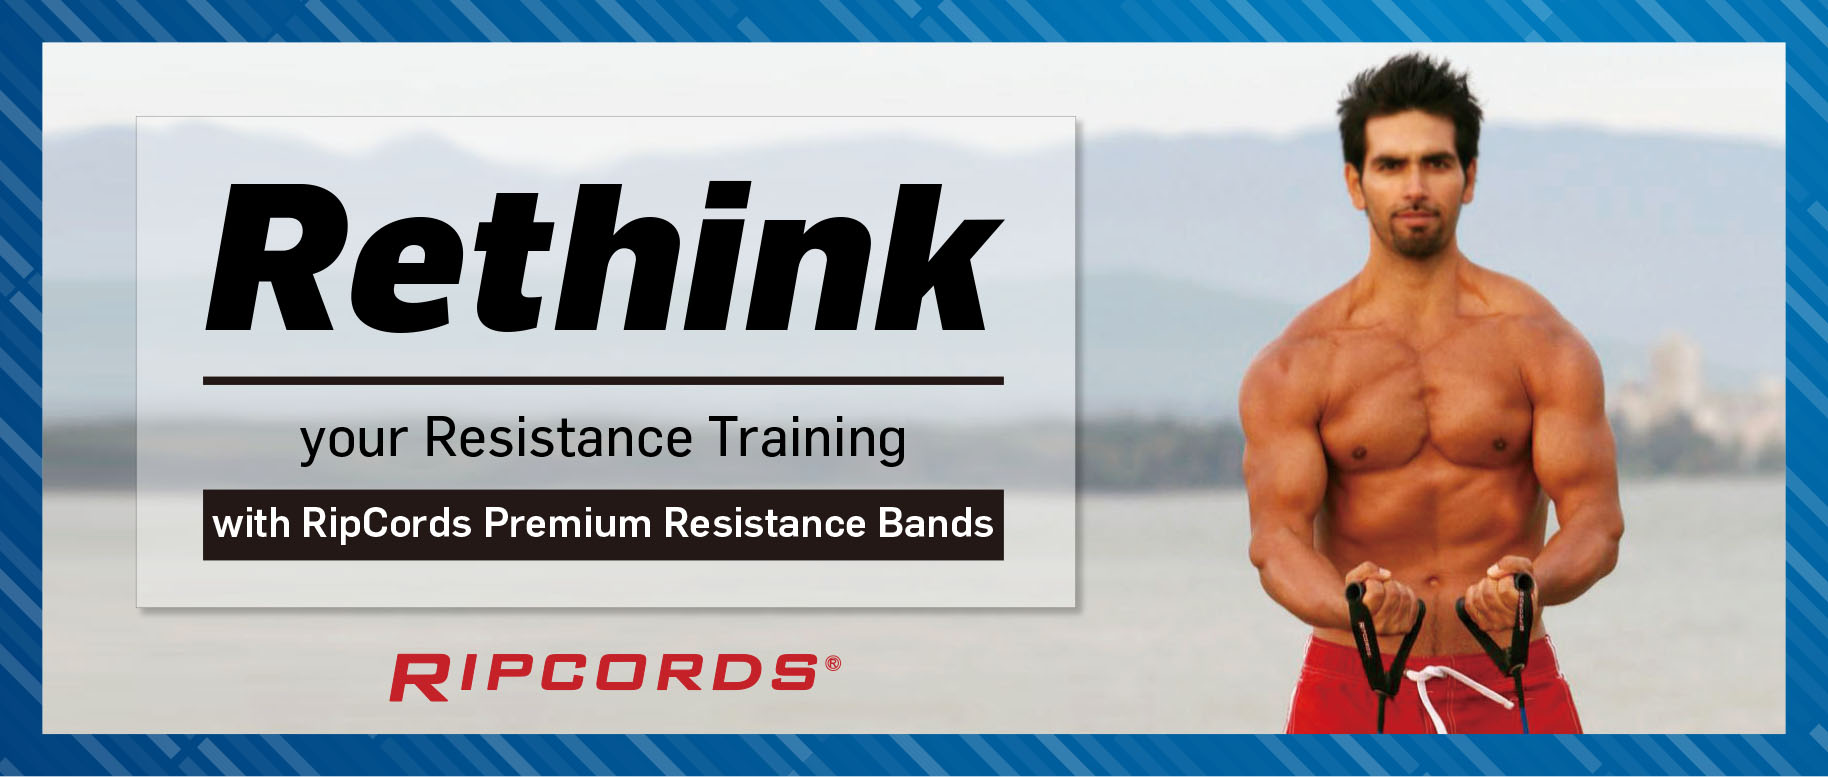 rethink resistance Training